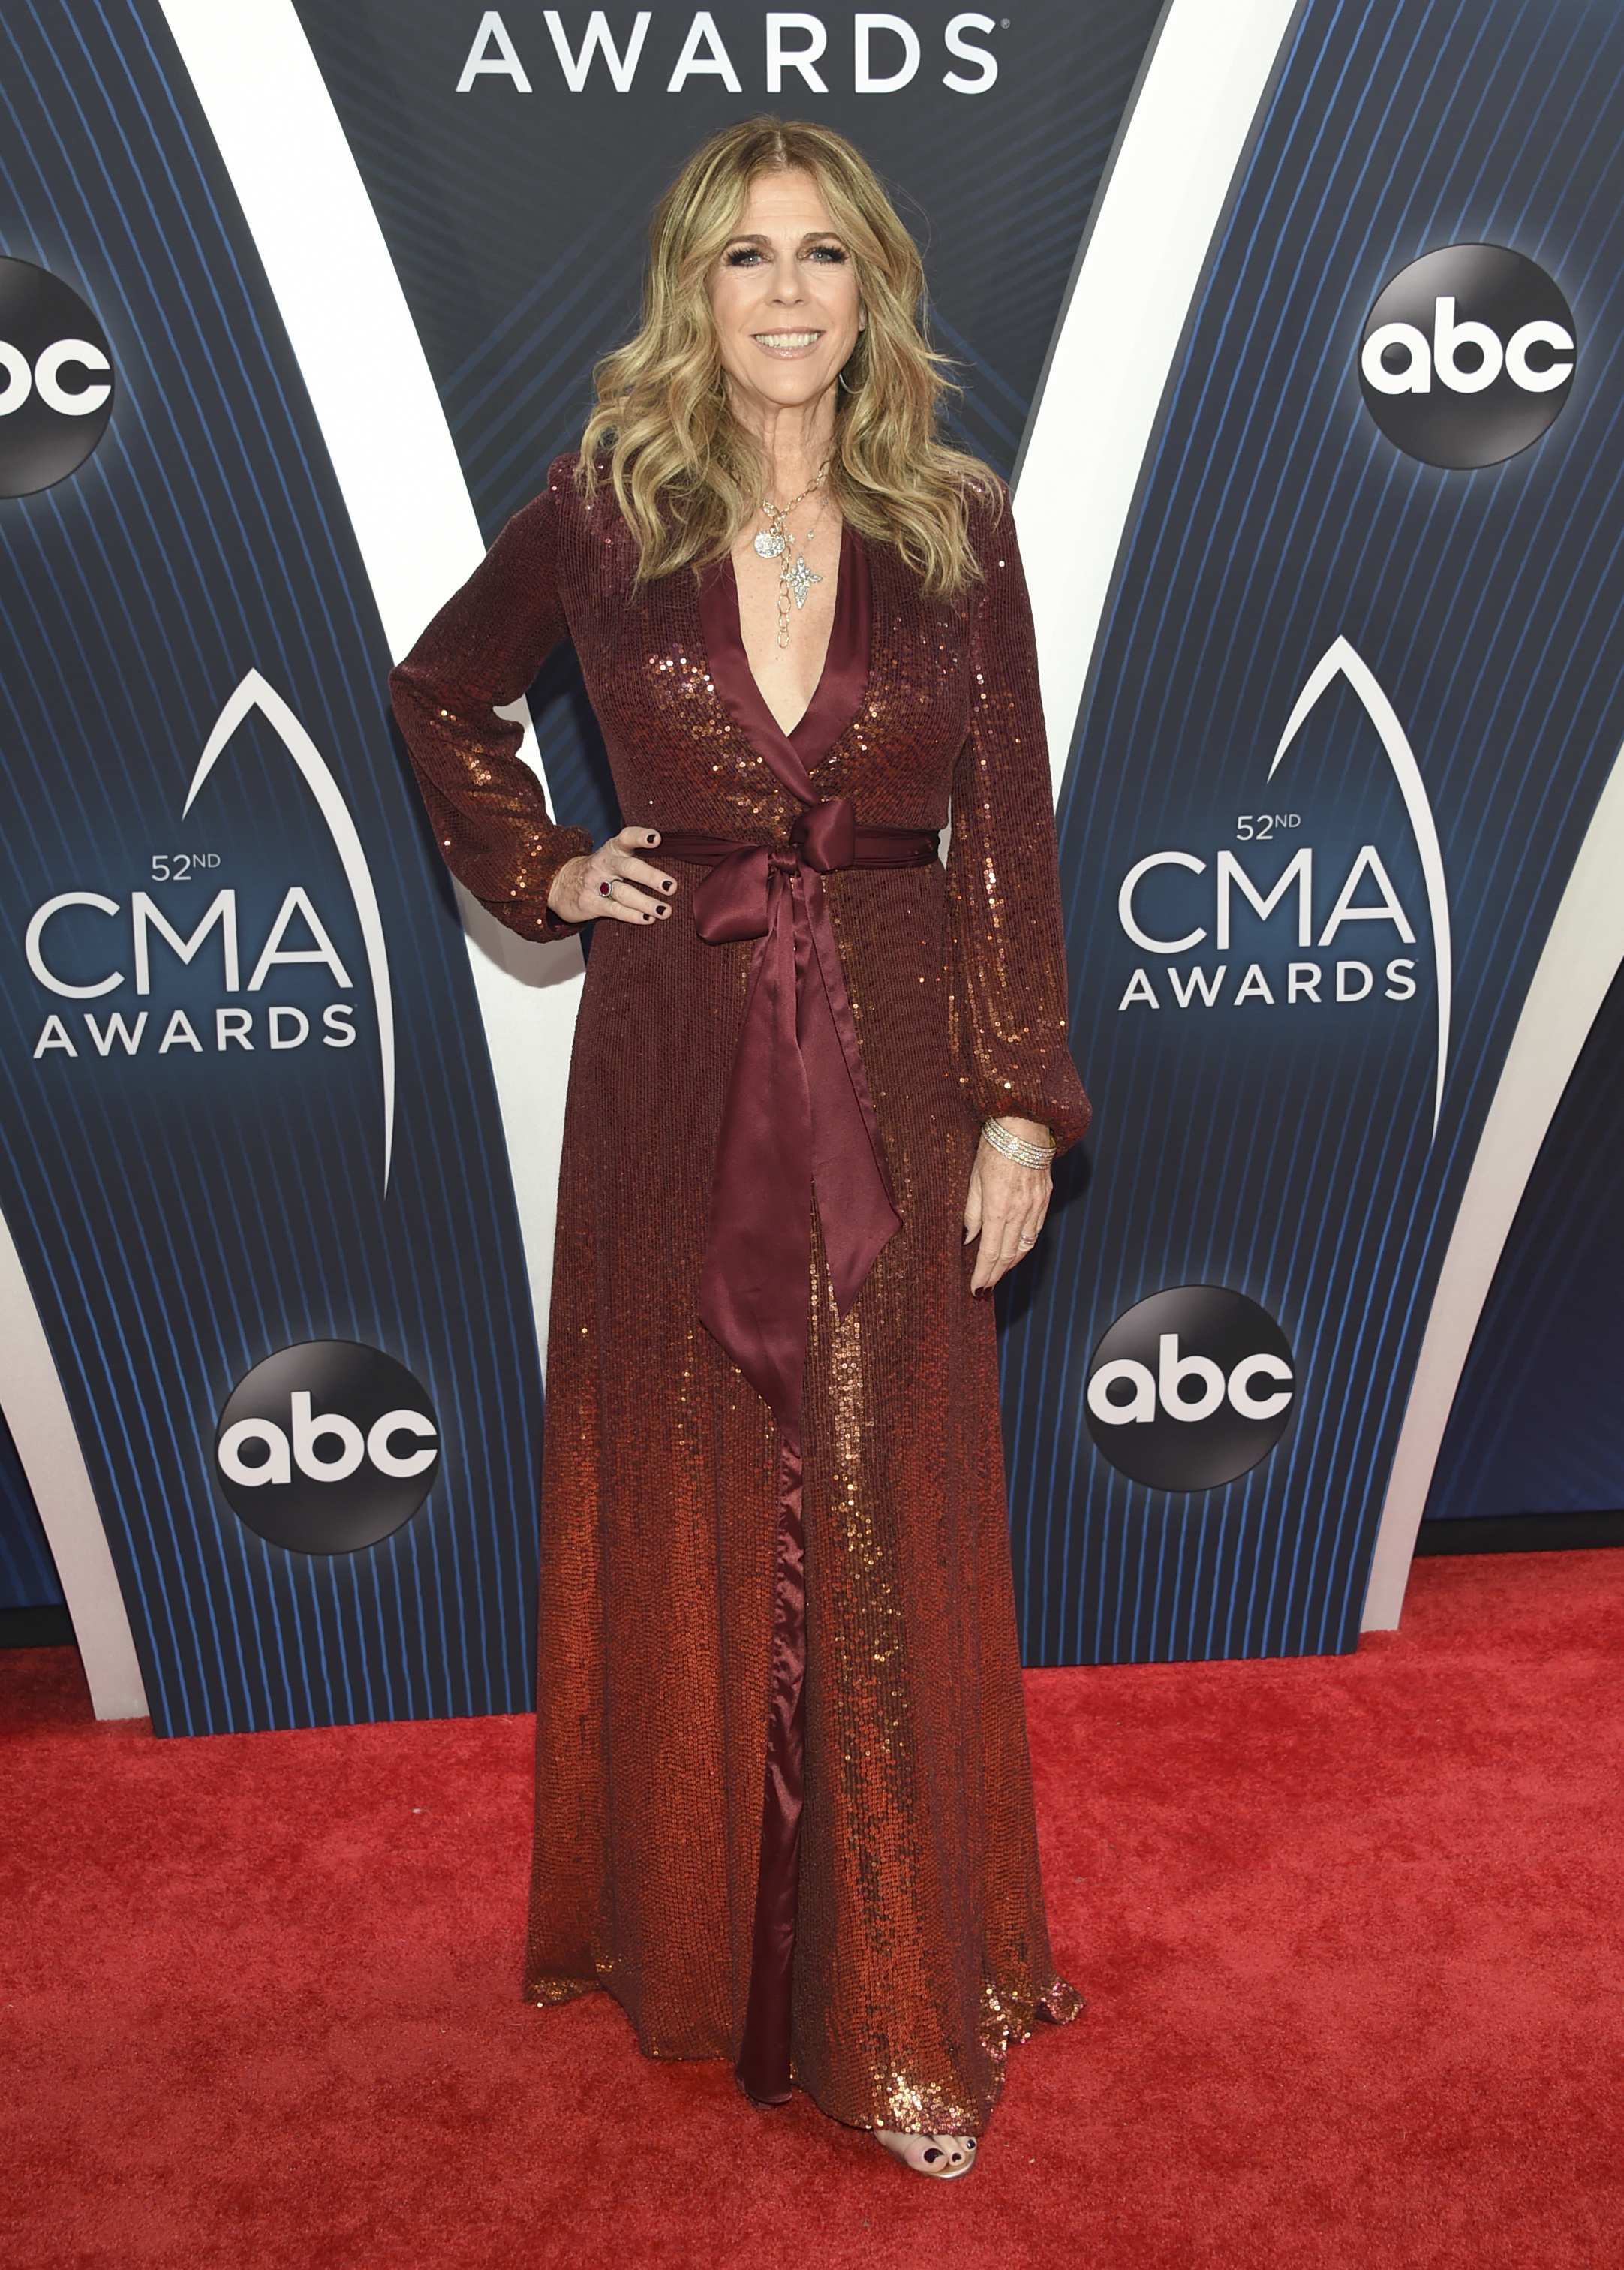 "<div class=""meta image-caption""><div class=""origin-logo origin-image ap""><span>AP</span></div><span class=""caption-text"">Rita Wilson arrives at the 52nd annual CMA Awards at Bridgestone Arena on Wednesday, Nov. 14, 2018, in Nashville, Tenn. (Photo by Evan Agostini/Invision/AP) (Evan Agostini/Invision/AP)</span></div>"